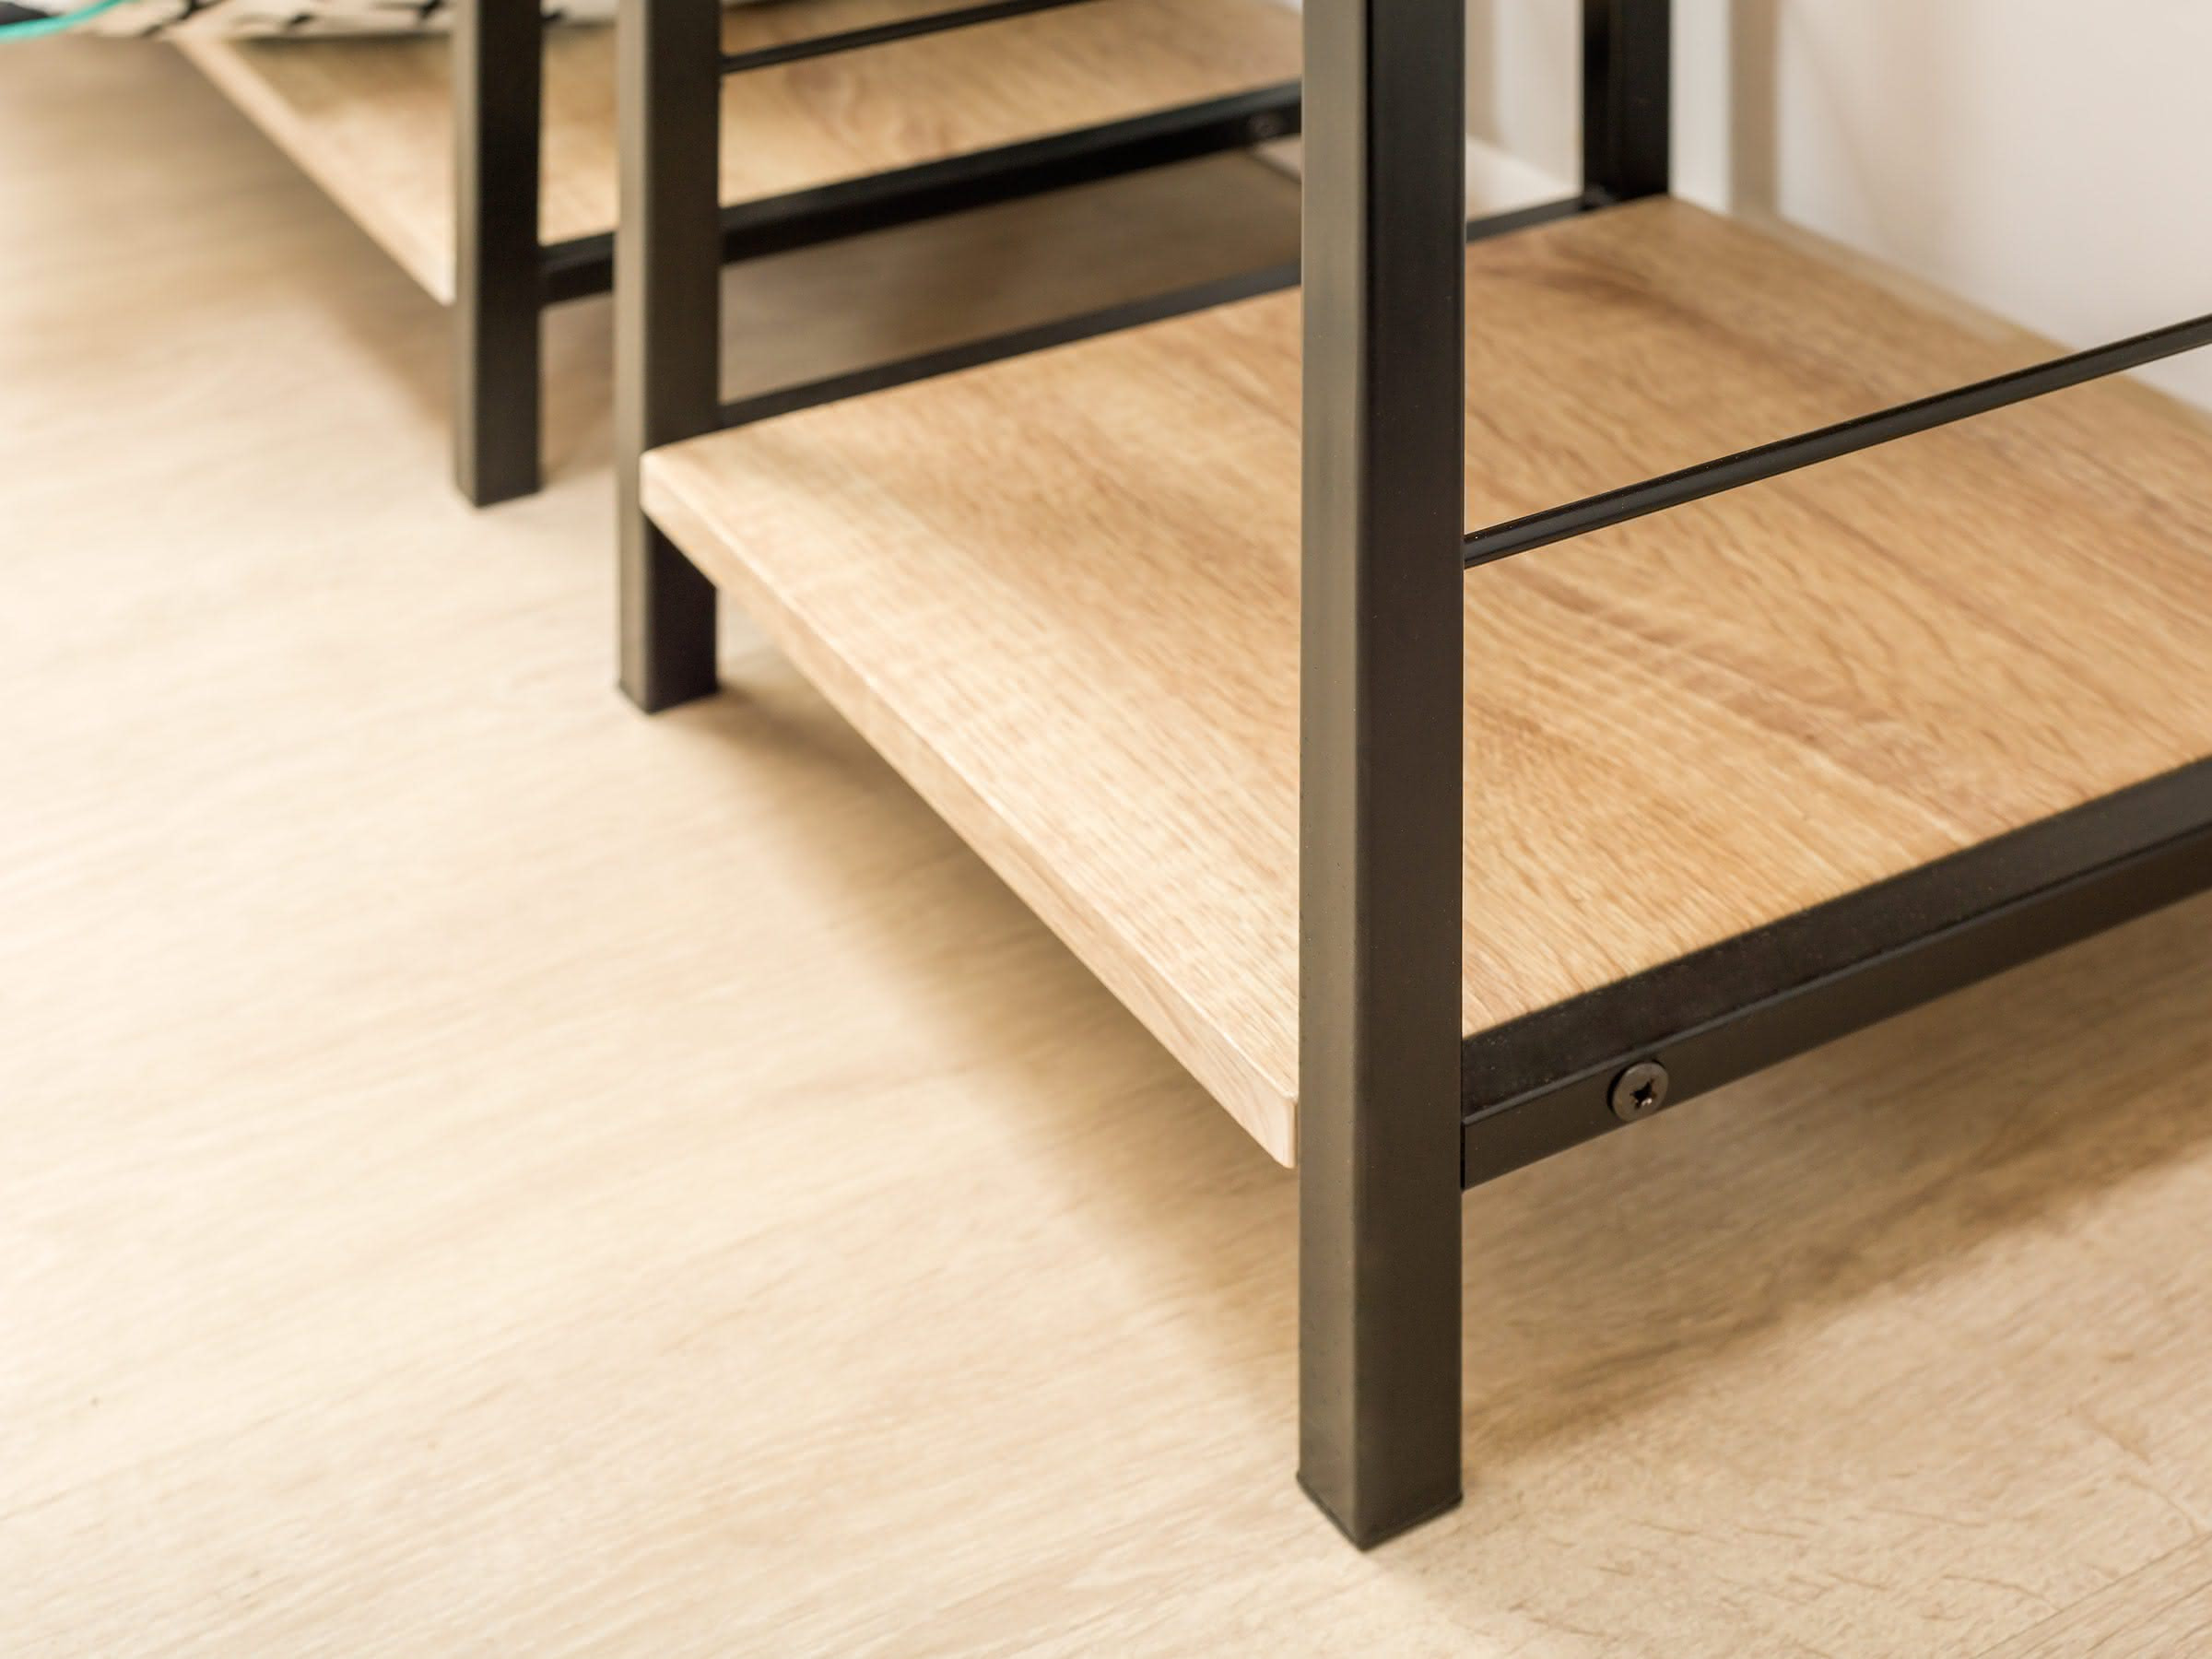 Black Friday Hardwood Floor Deals Of Vigo Shelves Shelving Units Mocka Nz for Vigo Shelves 93 X